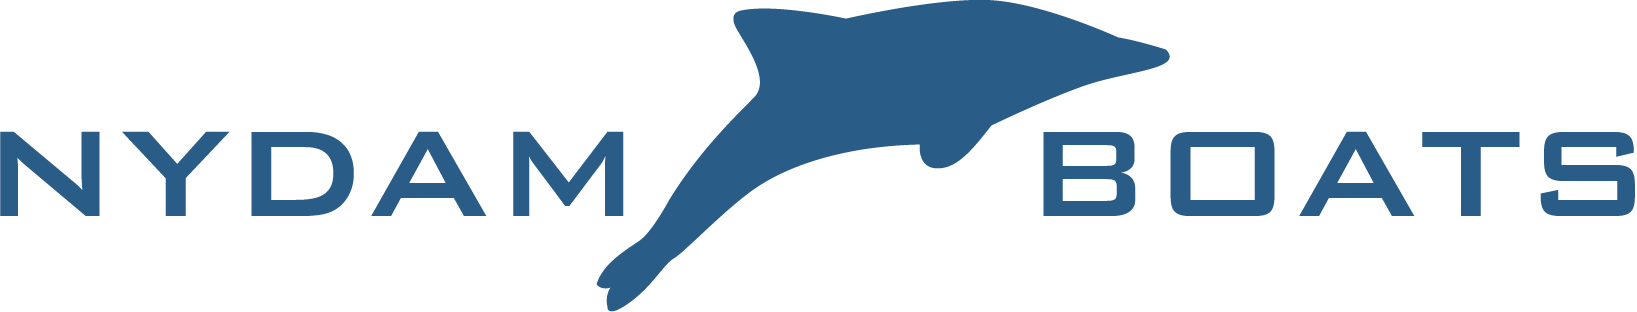 Nydam _logo _light _blup _cropped